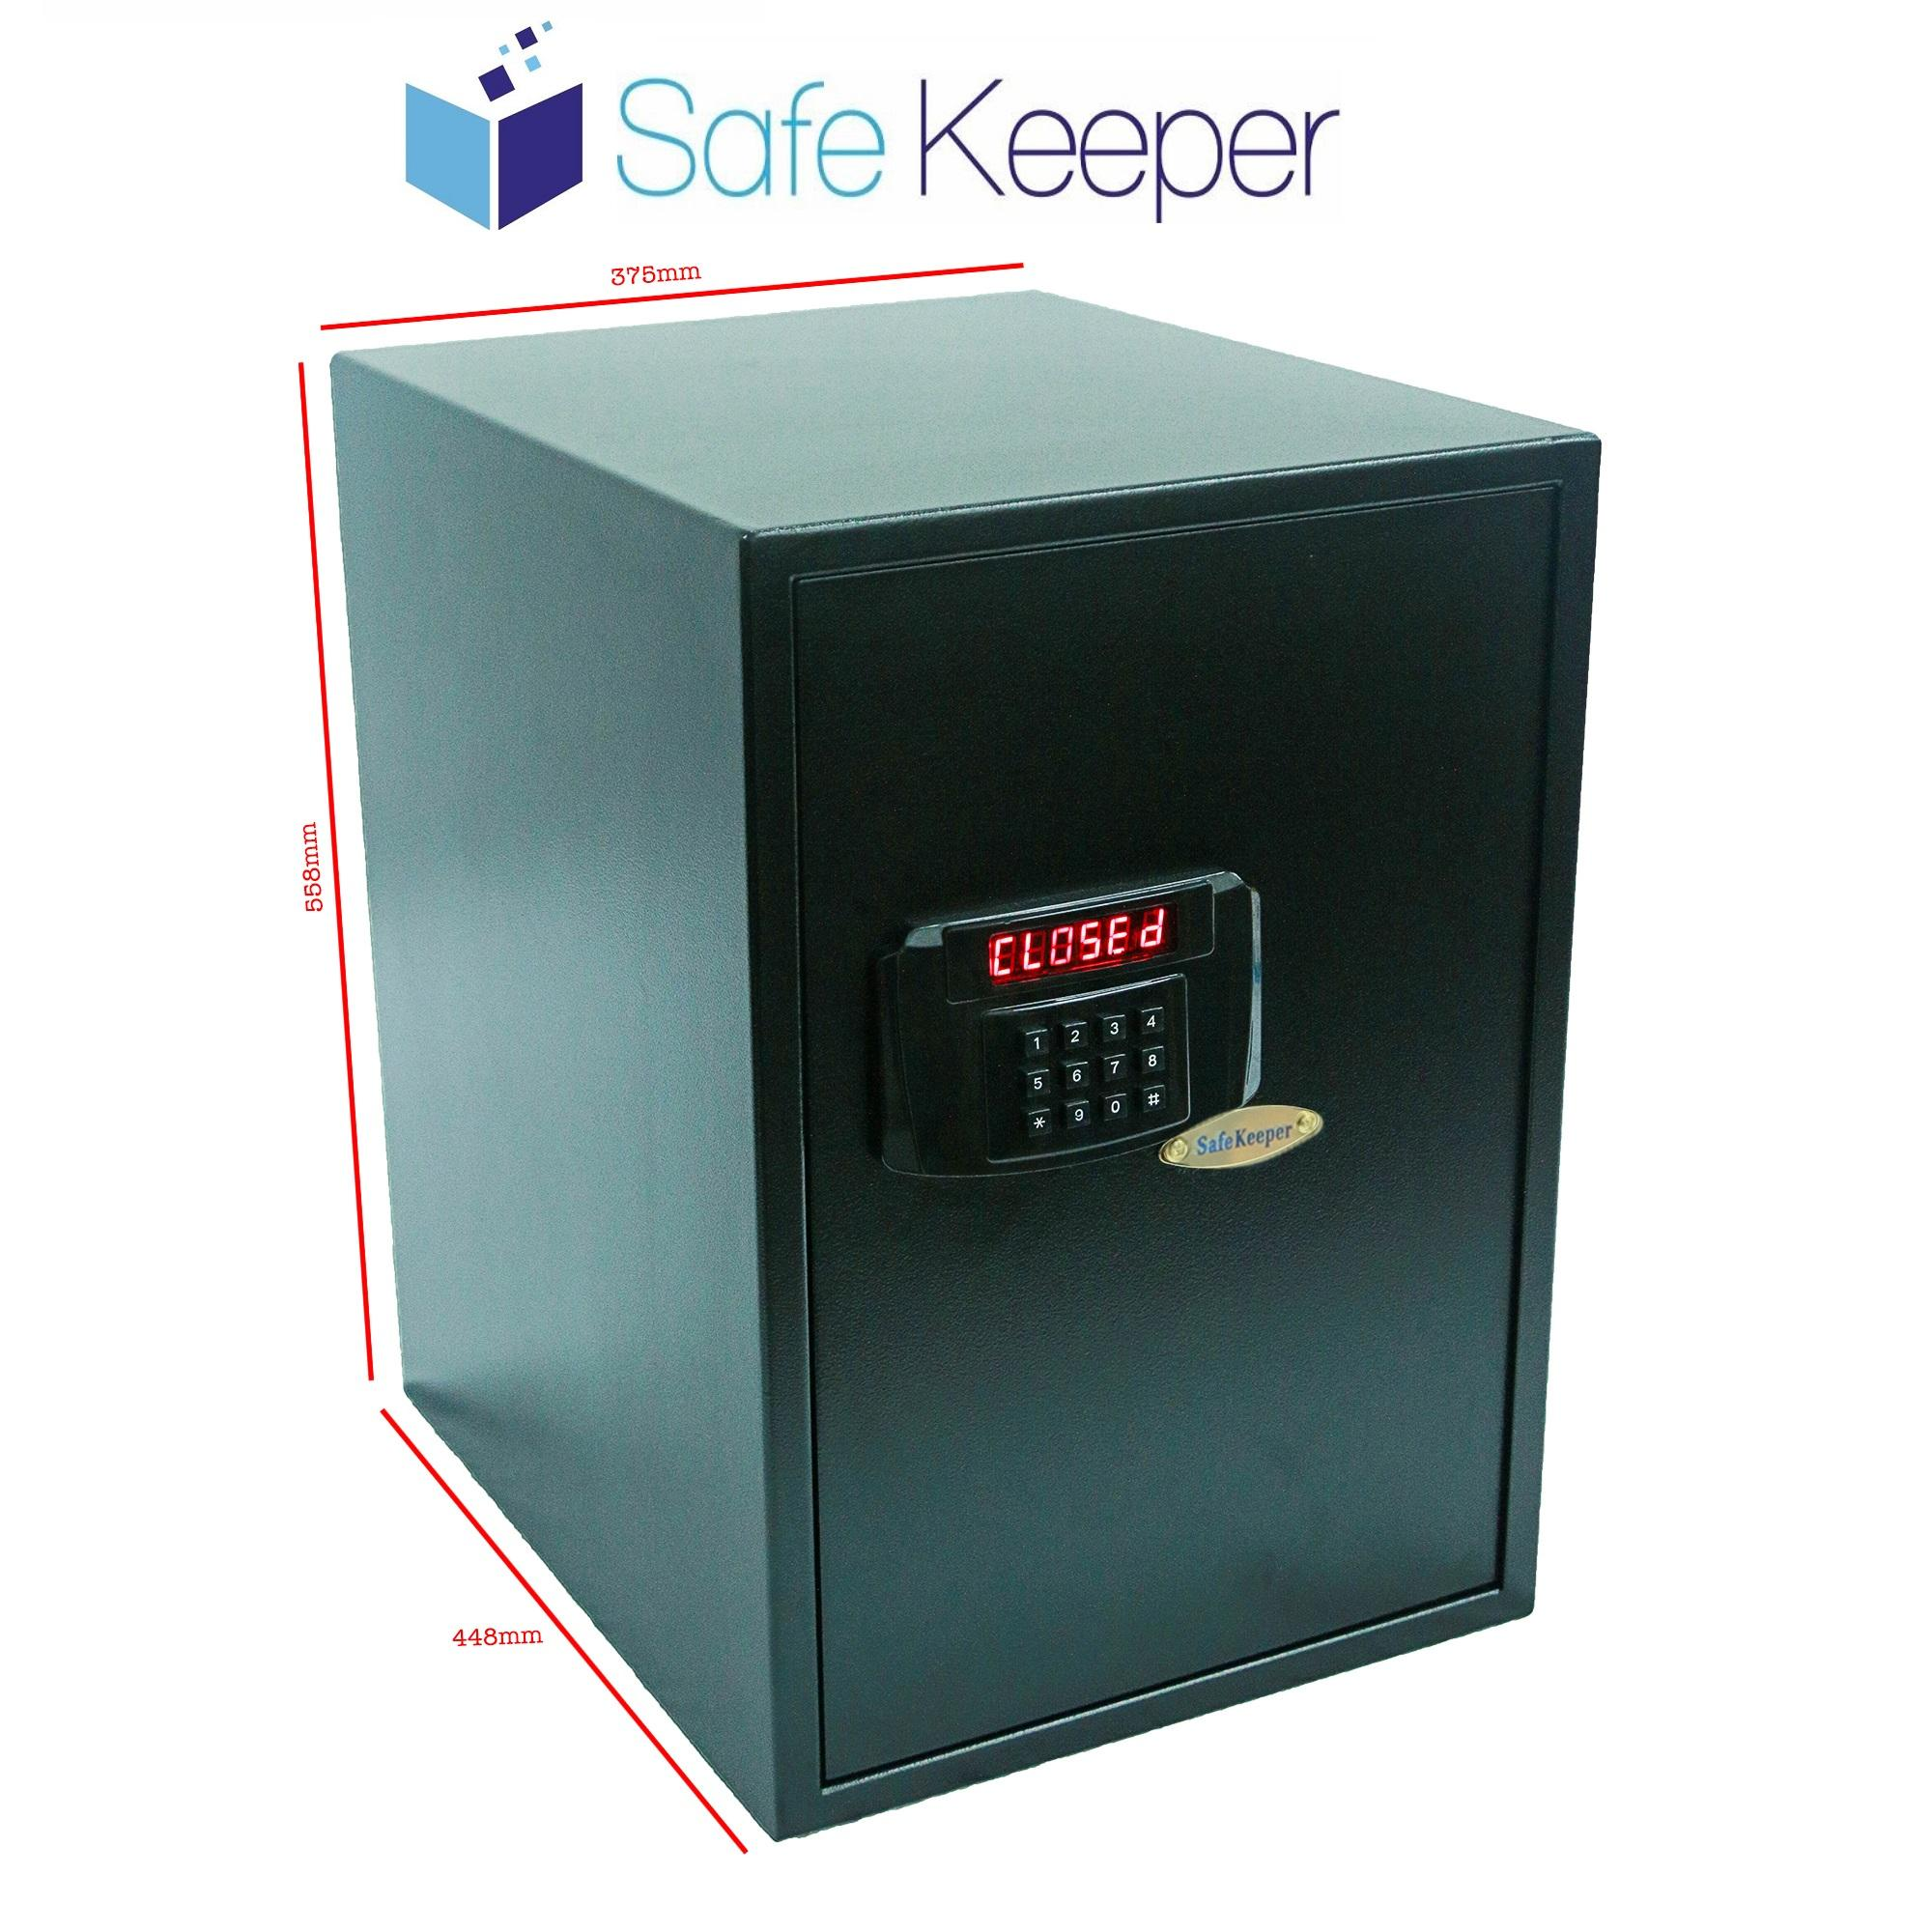 SafeKeeper SK5637 XL Safe (100% New Product) (Color: Black)~ SG Seller ~ Ready Stocks~ FREE Delivery ~ 3 Working Days!